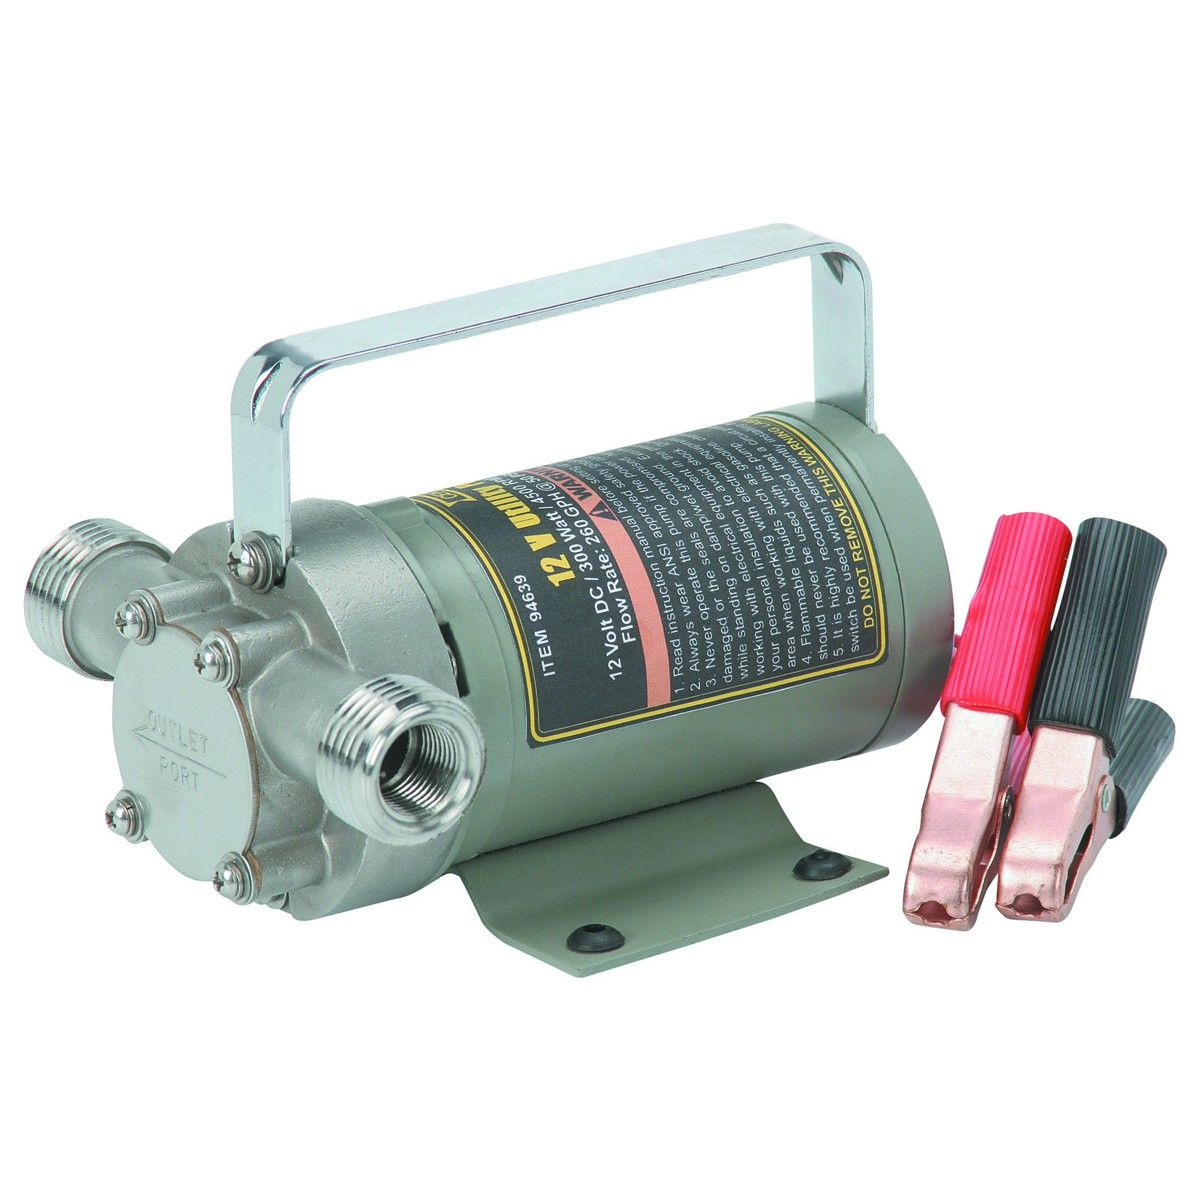 12 Volt Marine Utility Water Pump Utility Water Water Pumps Utility Pumps